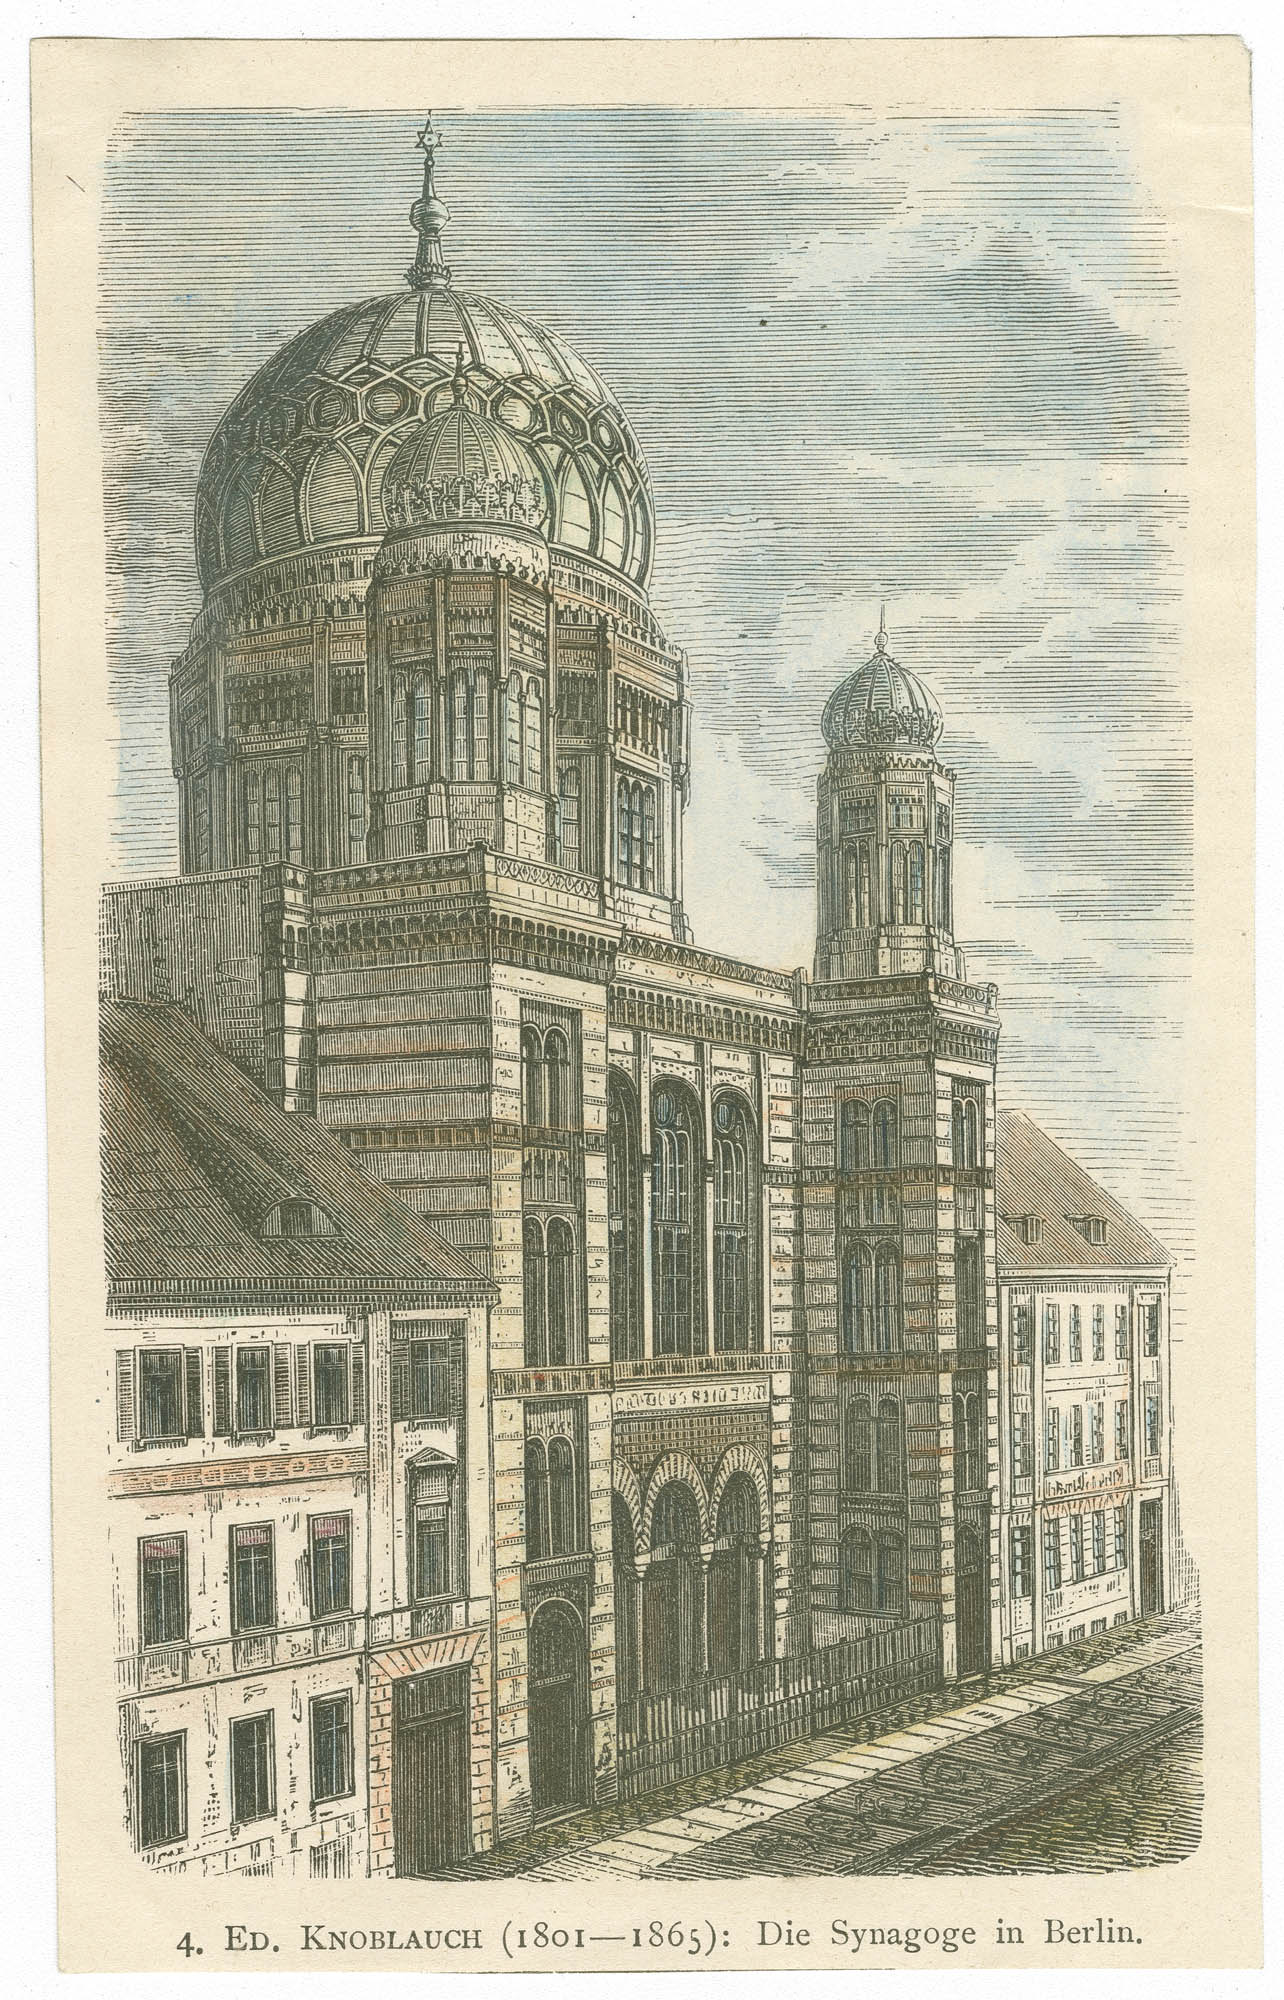 Die Synagoge in Berlin